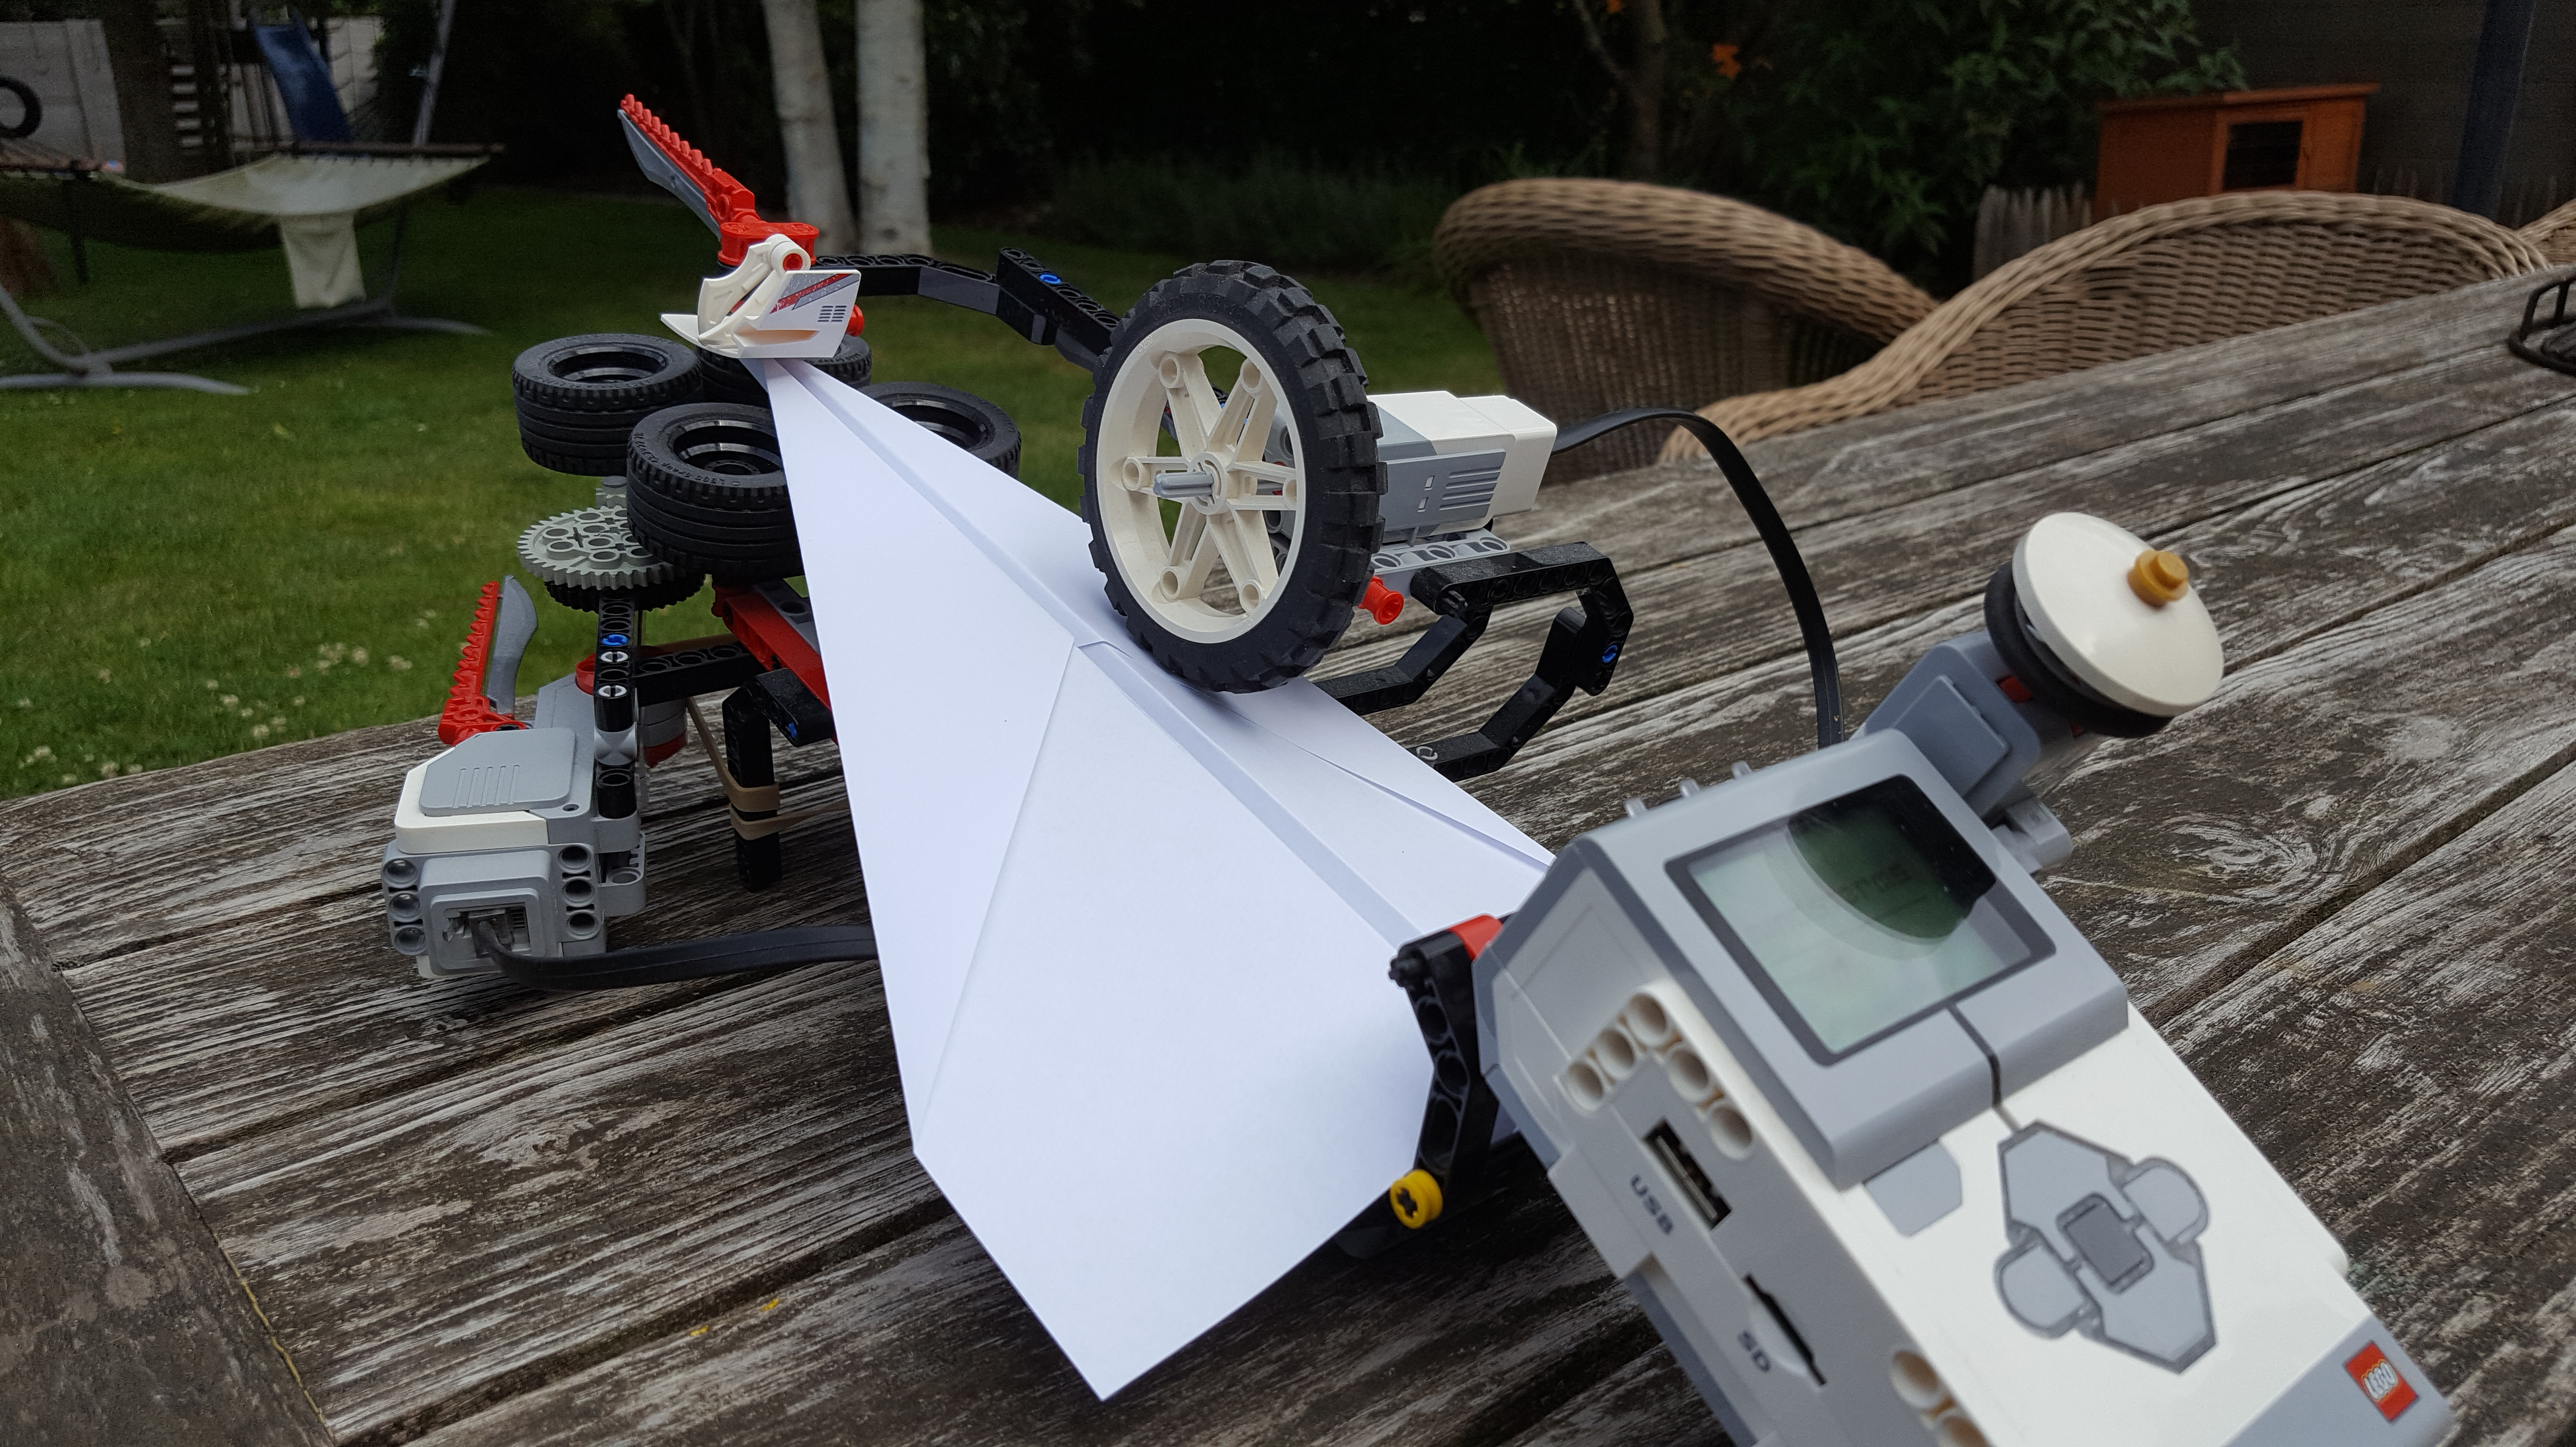 Lego Mindstorms EV3 Paper Plane Launcher back view